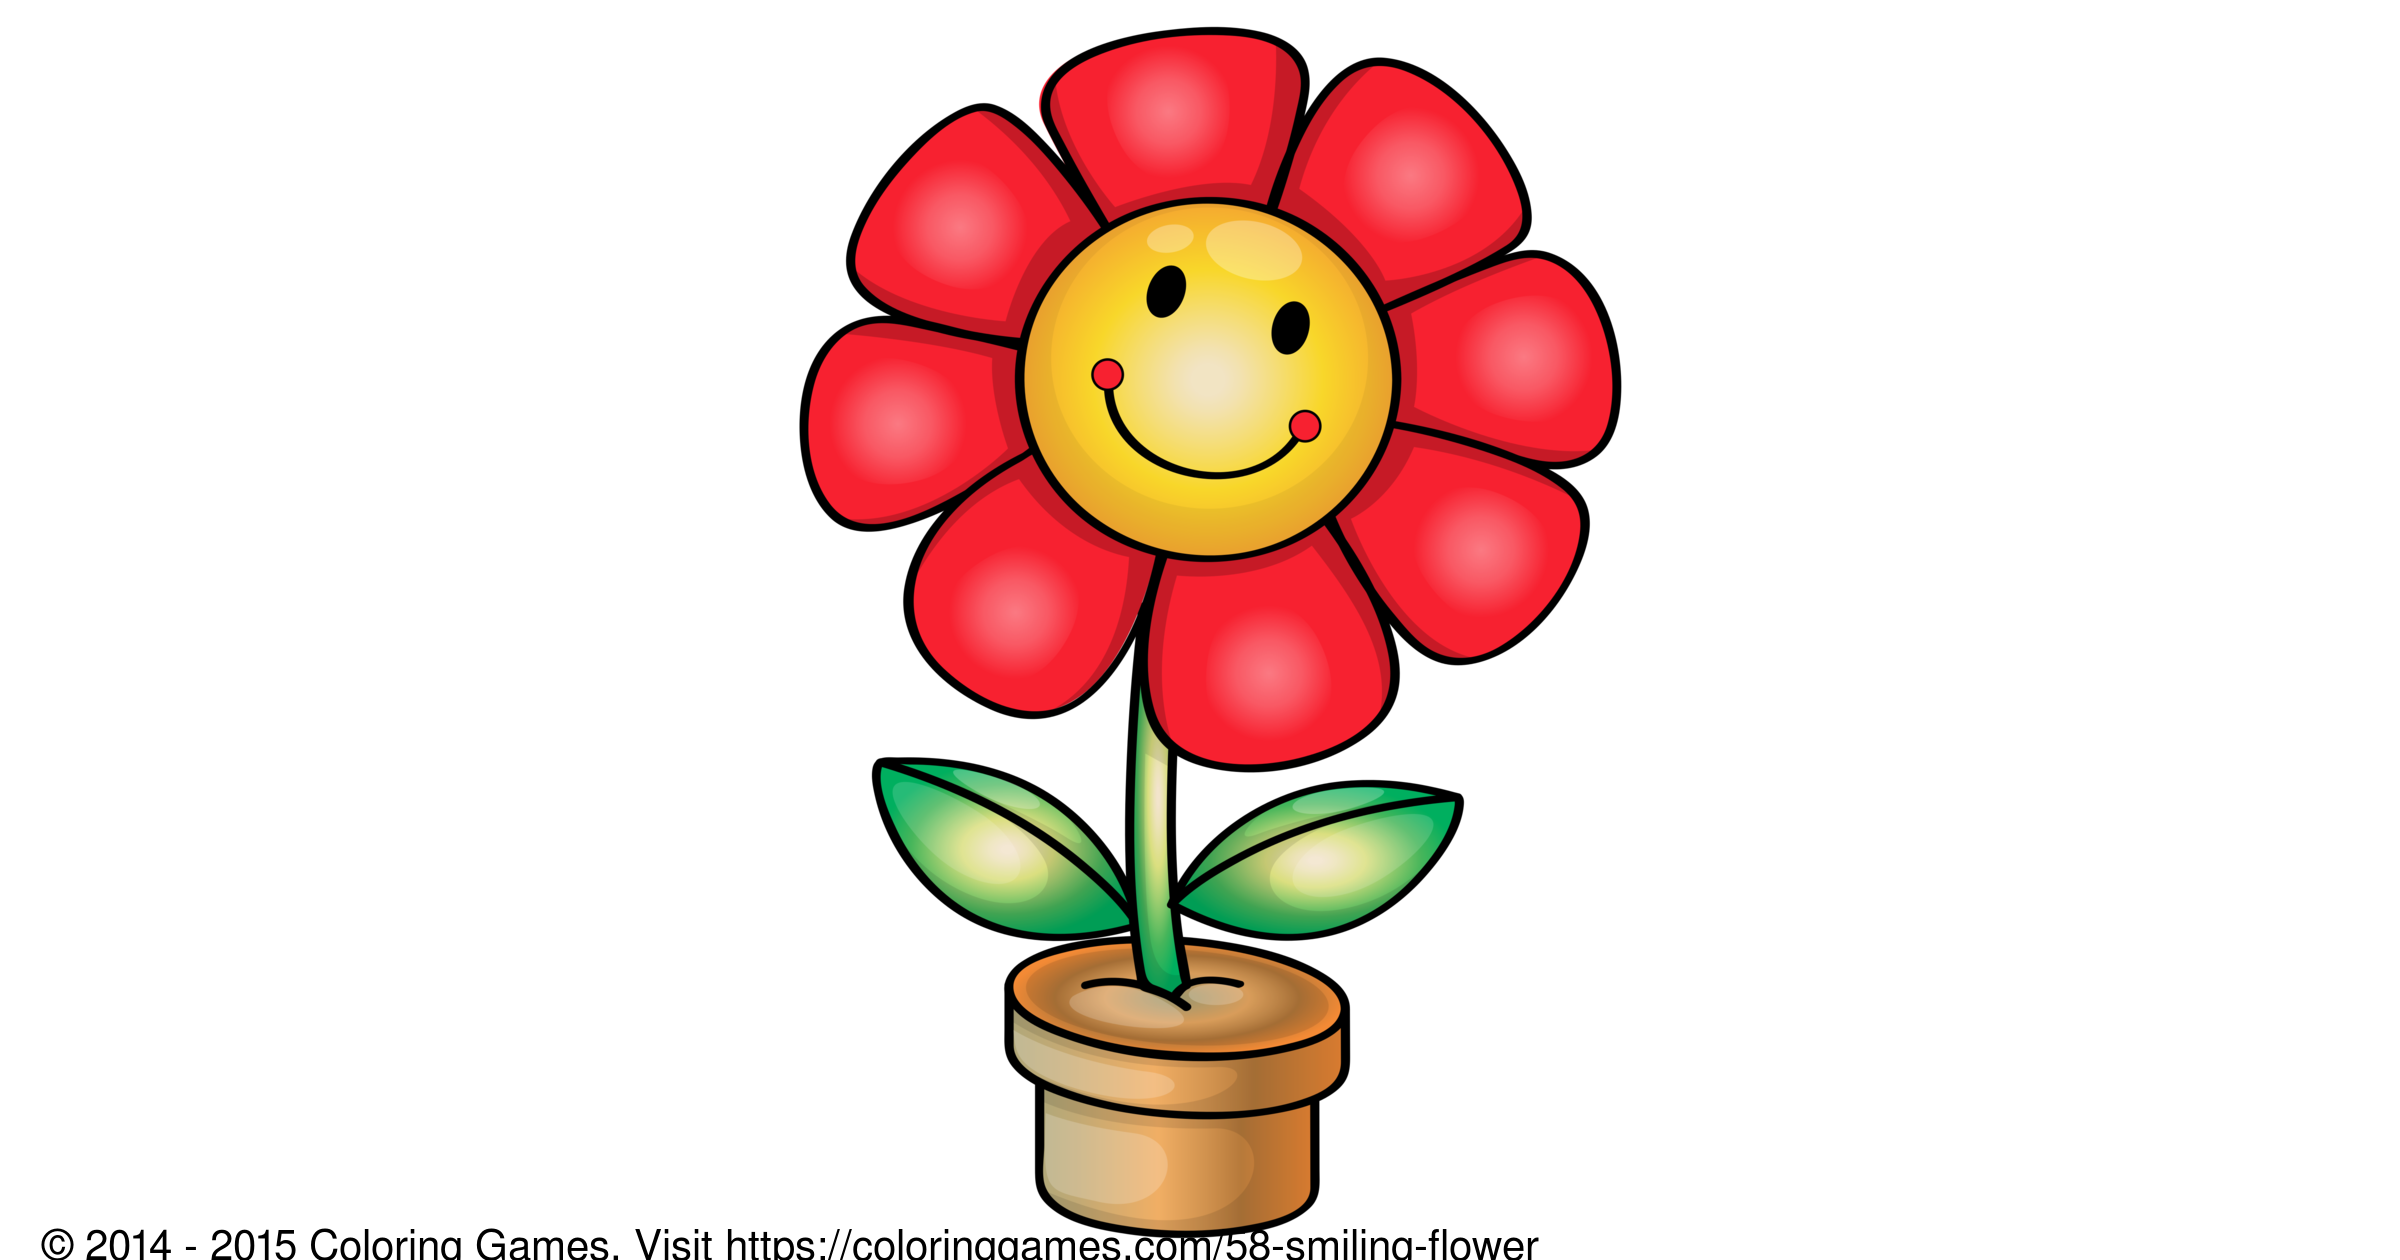 Smiling flower - Coloring Games and Coloring Pages